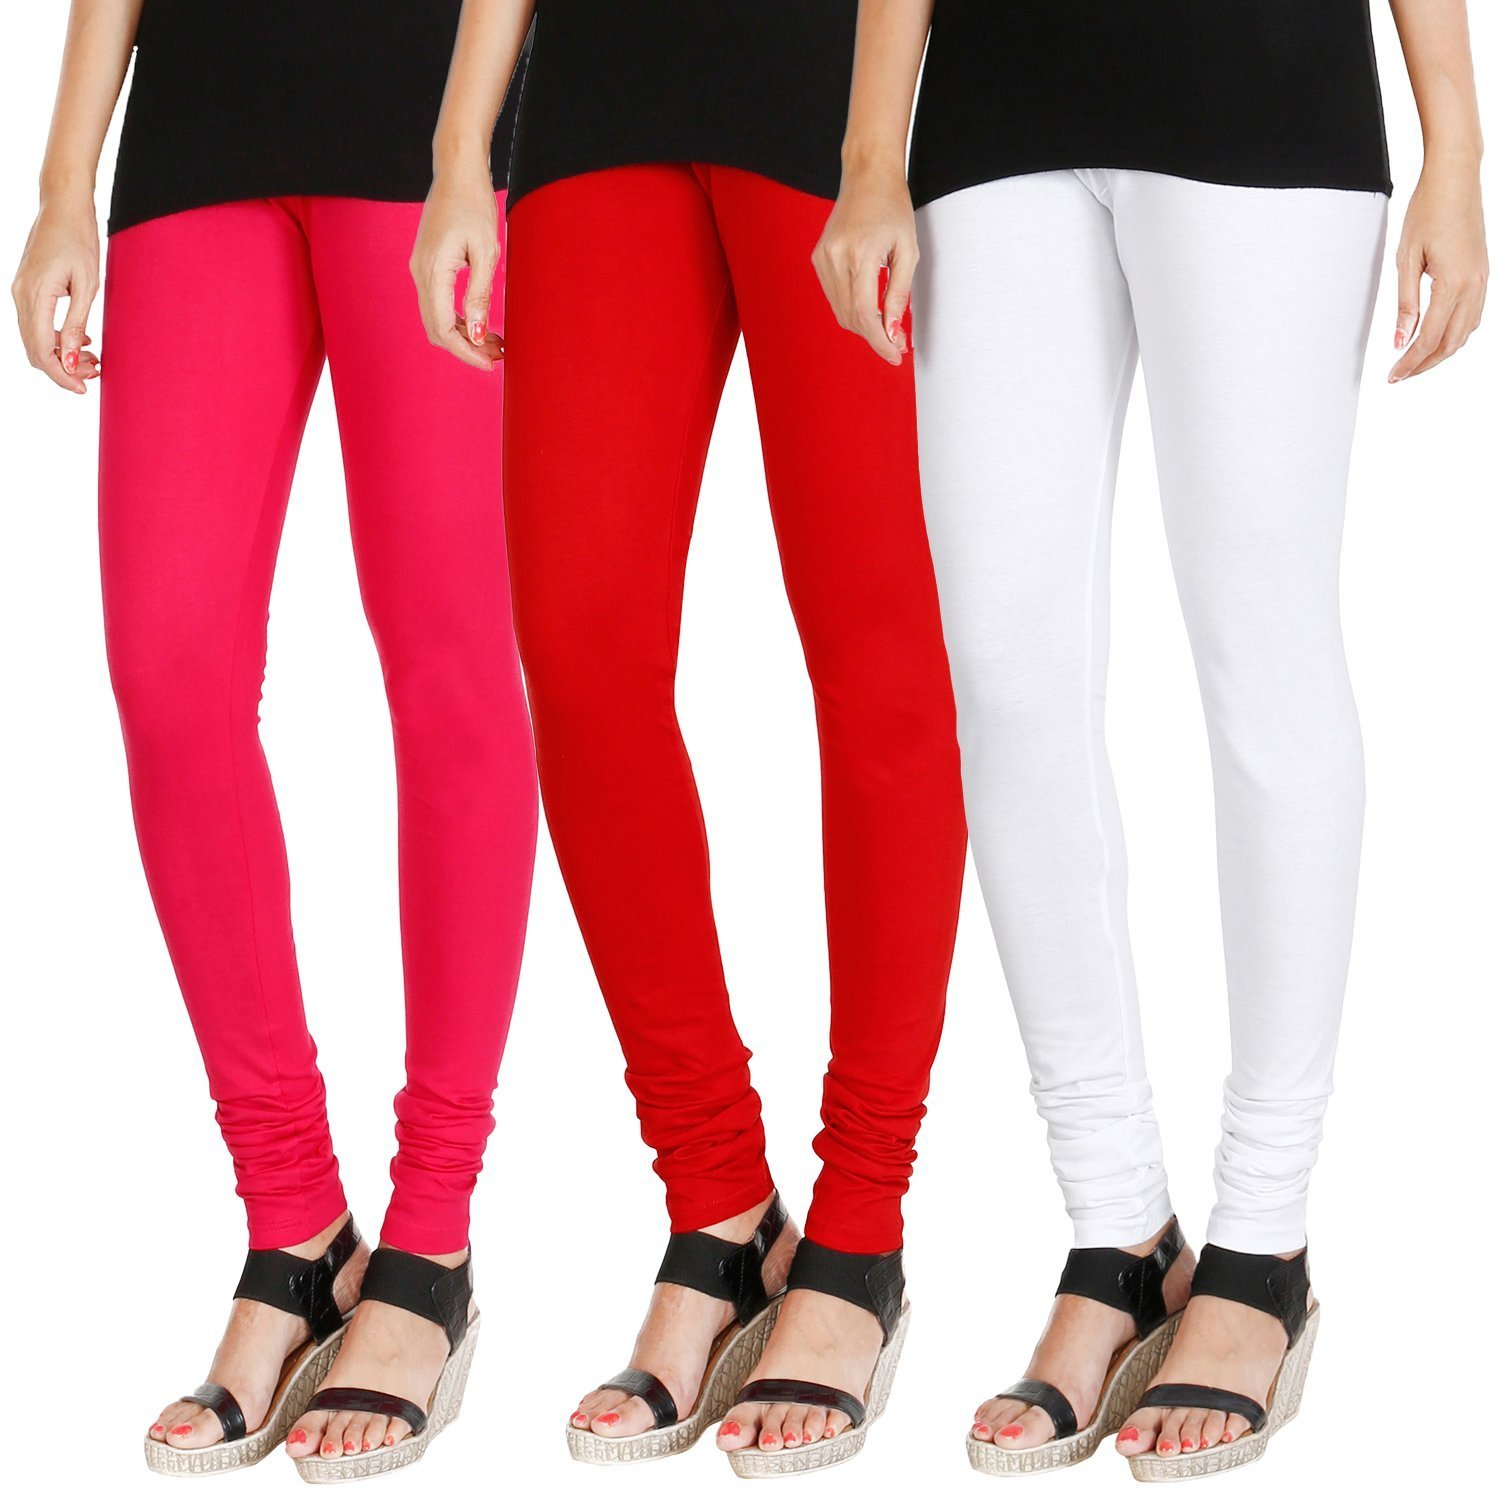 1d7c3451eb390d Tapestry Lovers Ladies/Women/Girls Soft Cotton Lycra Churidar Stretchable  Leggings Size L, XL, XXL, Combo Pack of 3: Amazon.in: Clothing & Accessories